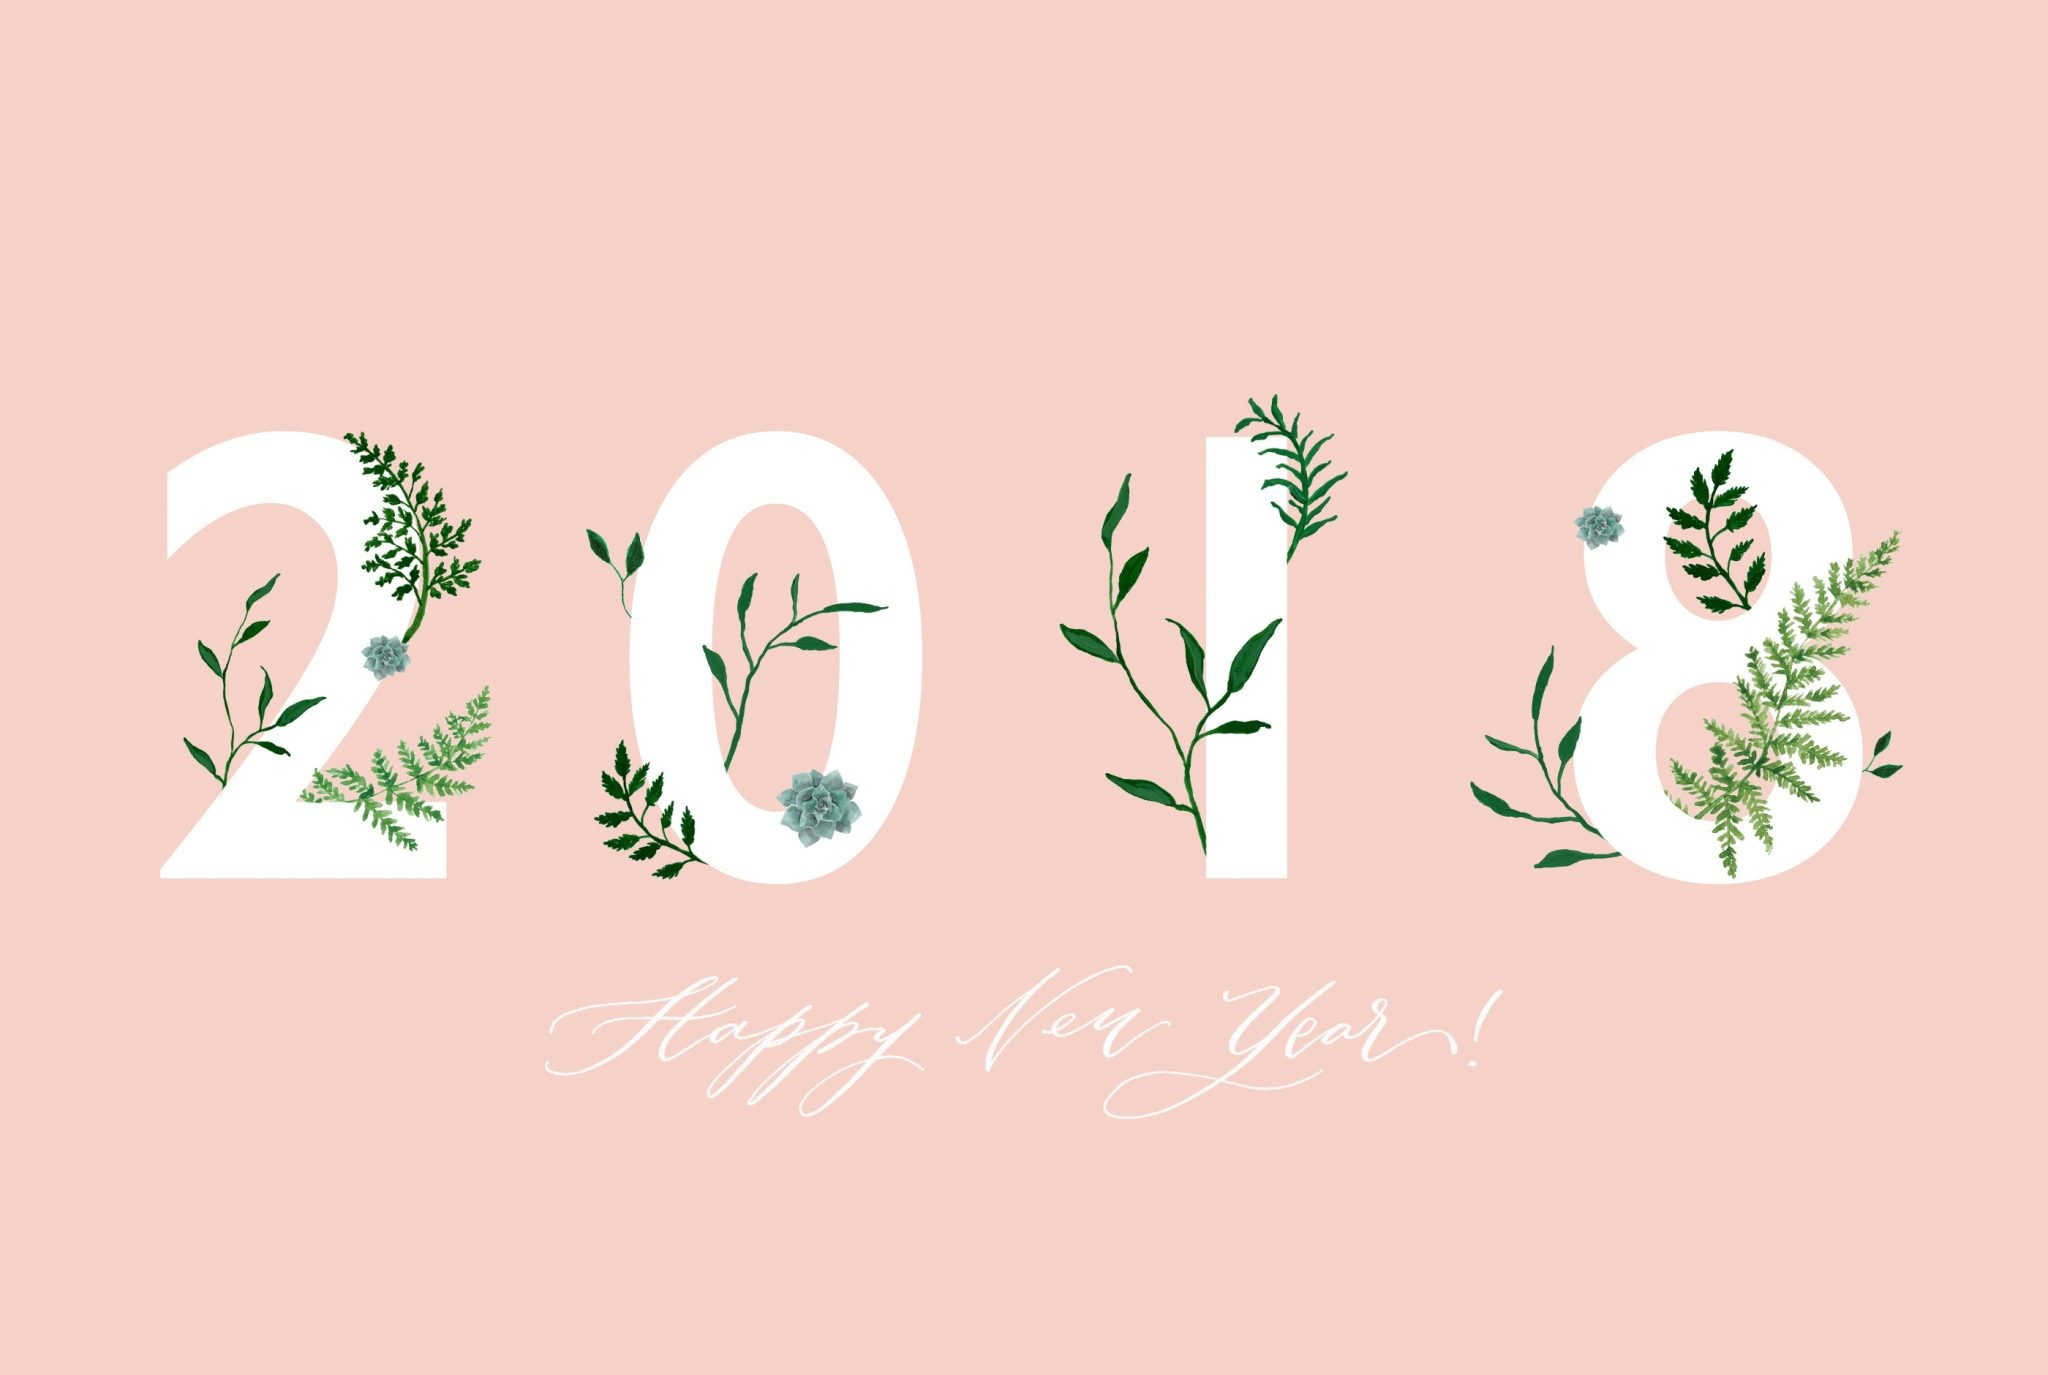 2048x1375 Baby Chick January Desktop Wallpaper | We've partnered with Rachel from  Half Moon Lettering